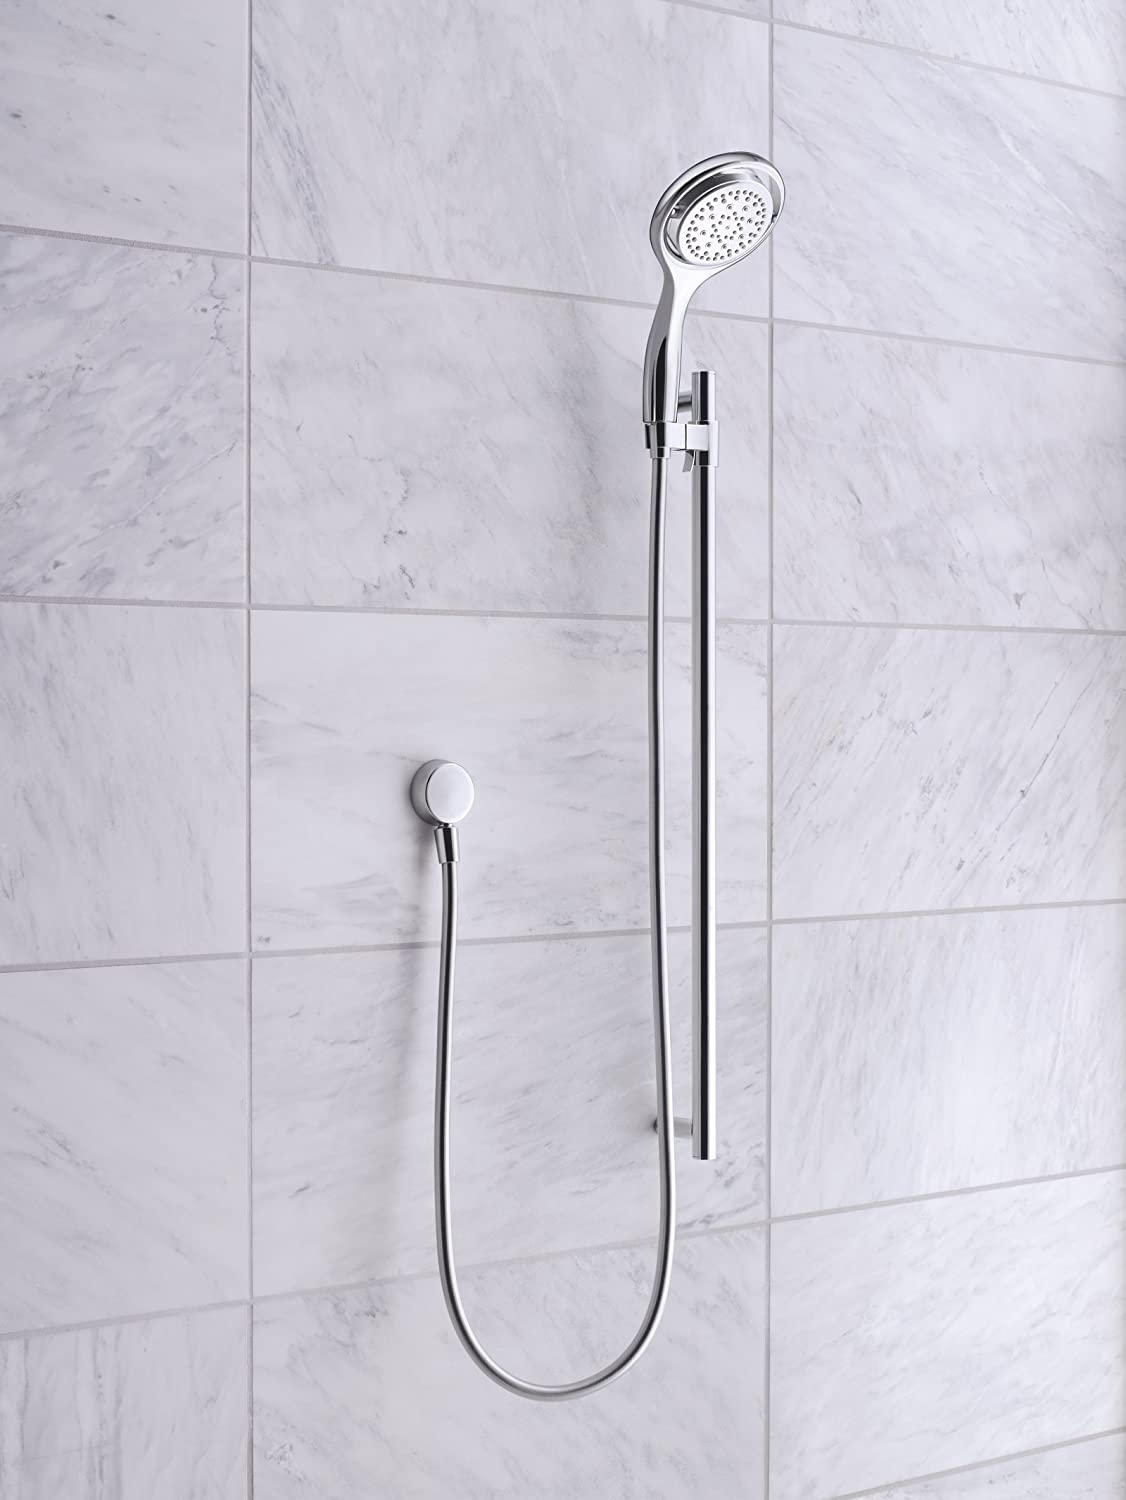 KOHLER K-17493-CP Flipside 01 Handshower, Polished Chrome - Hand ...